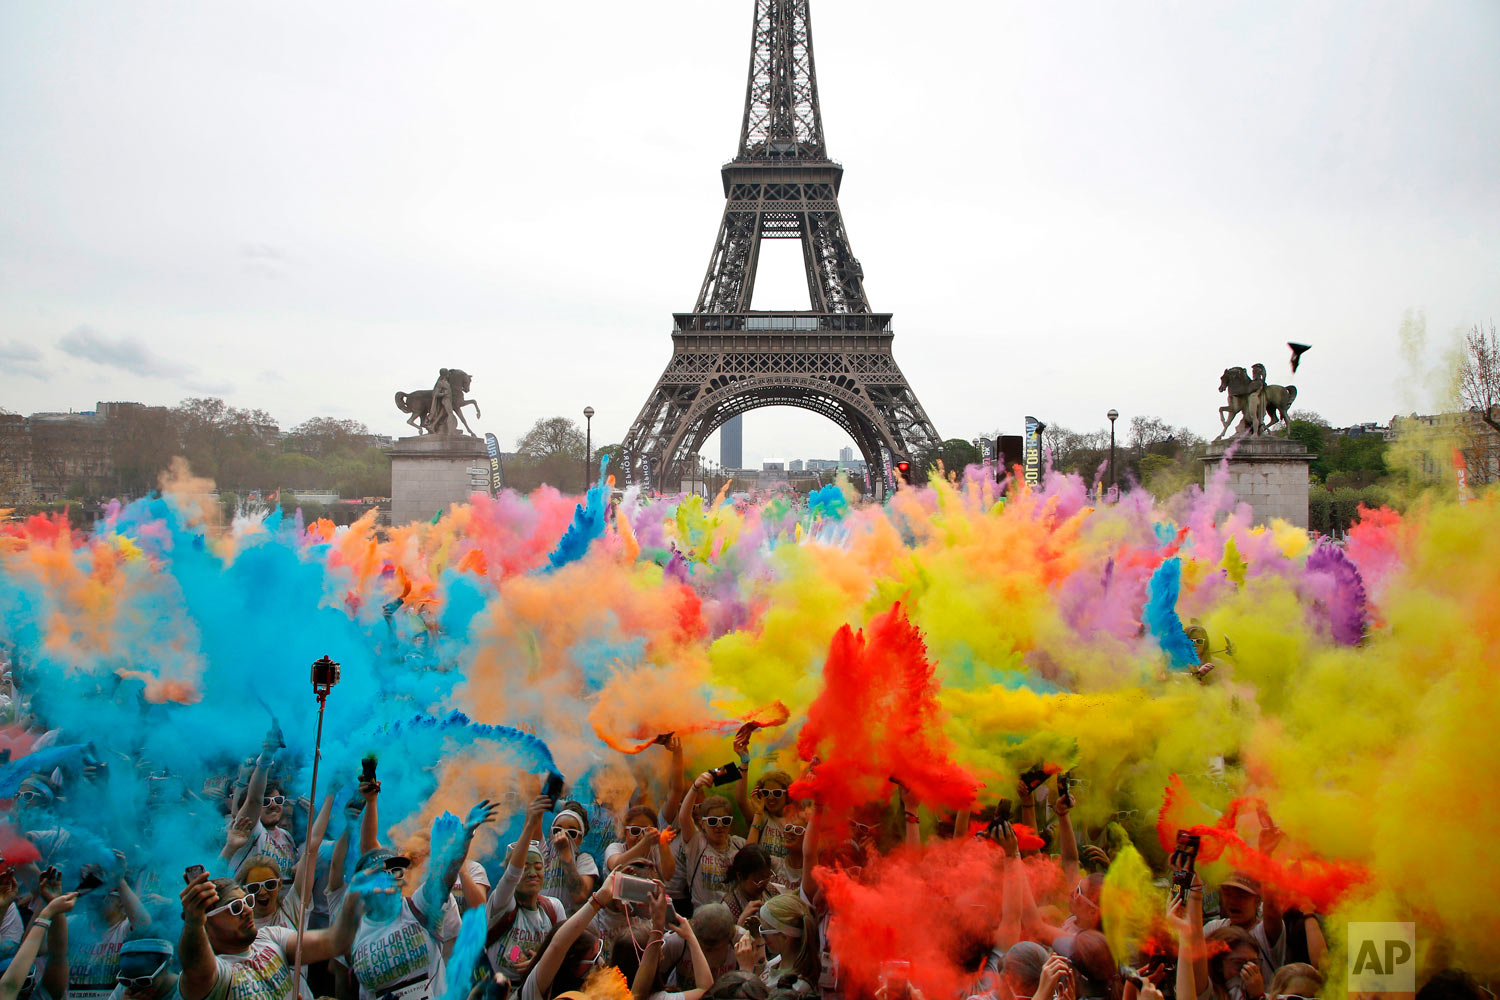 People throw colored powder as they celebrate at the end of the Color Run 2018 race in front of the Eiffel Tower in Paris, Sunday, April 15, 2018. The Color Run is a 5 kilometer (3.1 mile) running event where participants are covered in bright colored powder at each check station and is less about speed and more about enjoying a day with friends and family. (AP Photo/Thibault Camus)